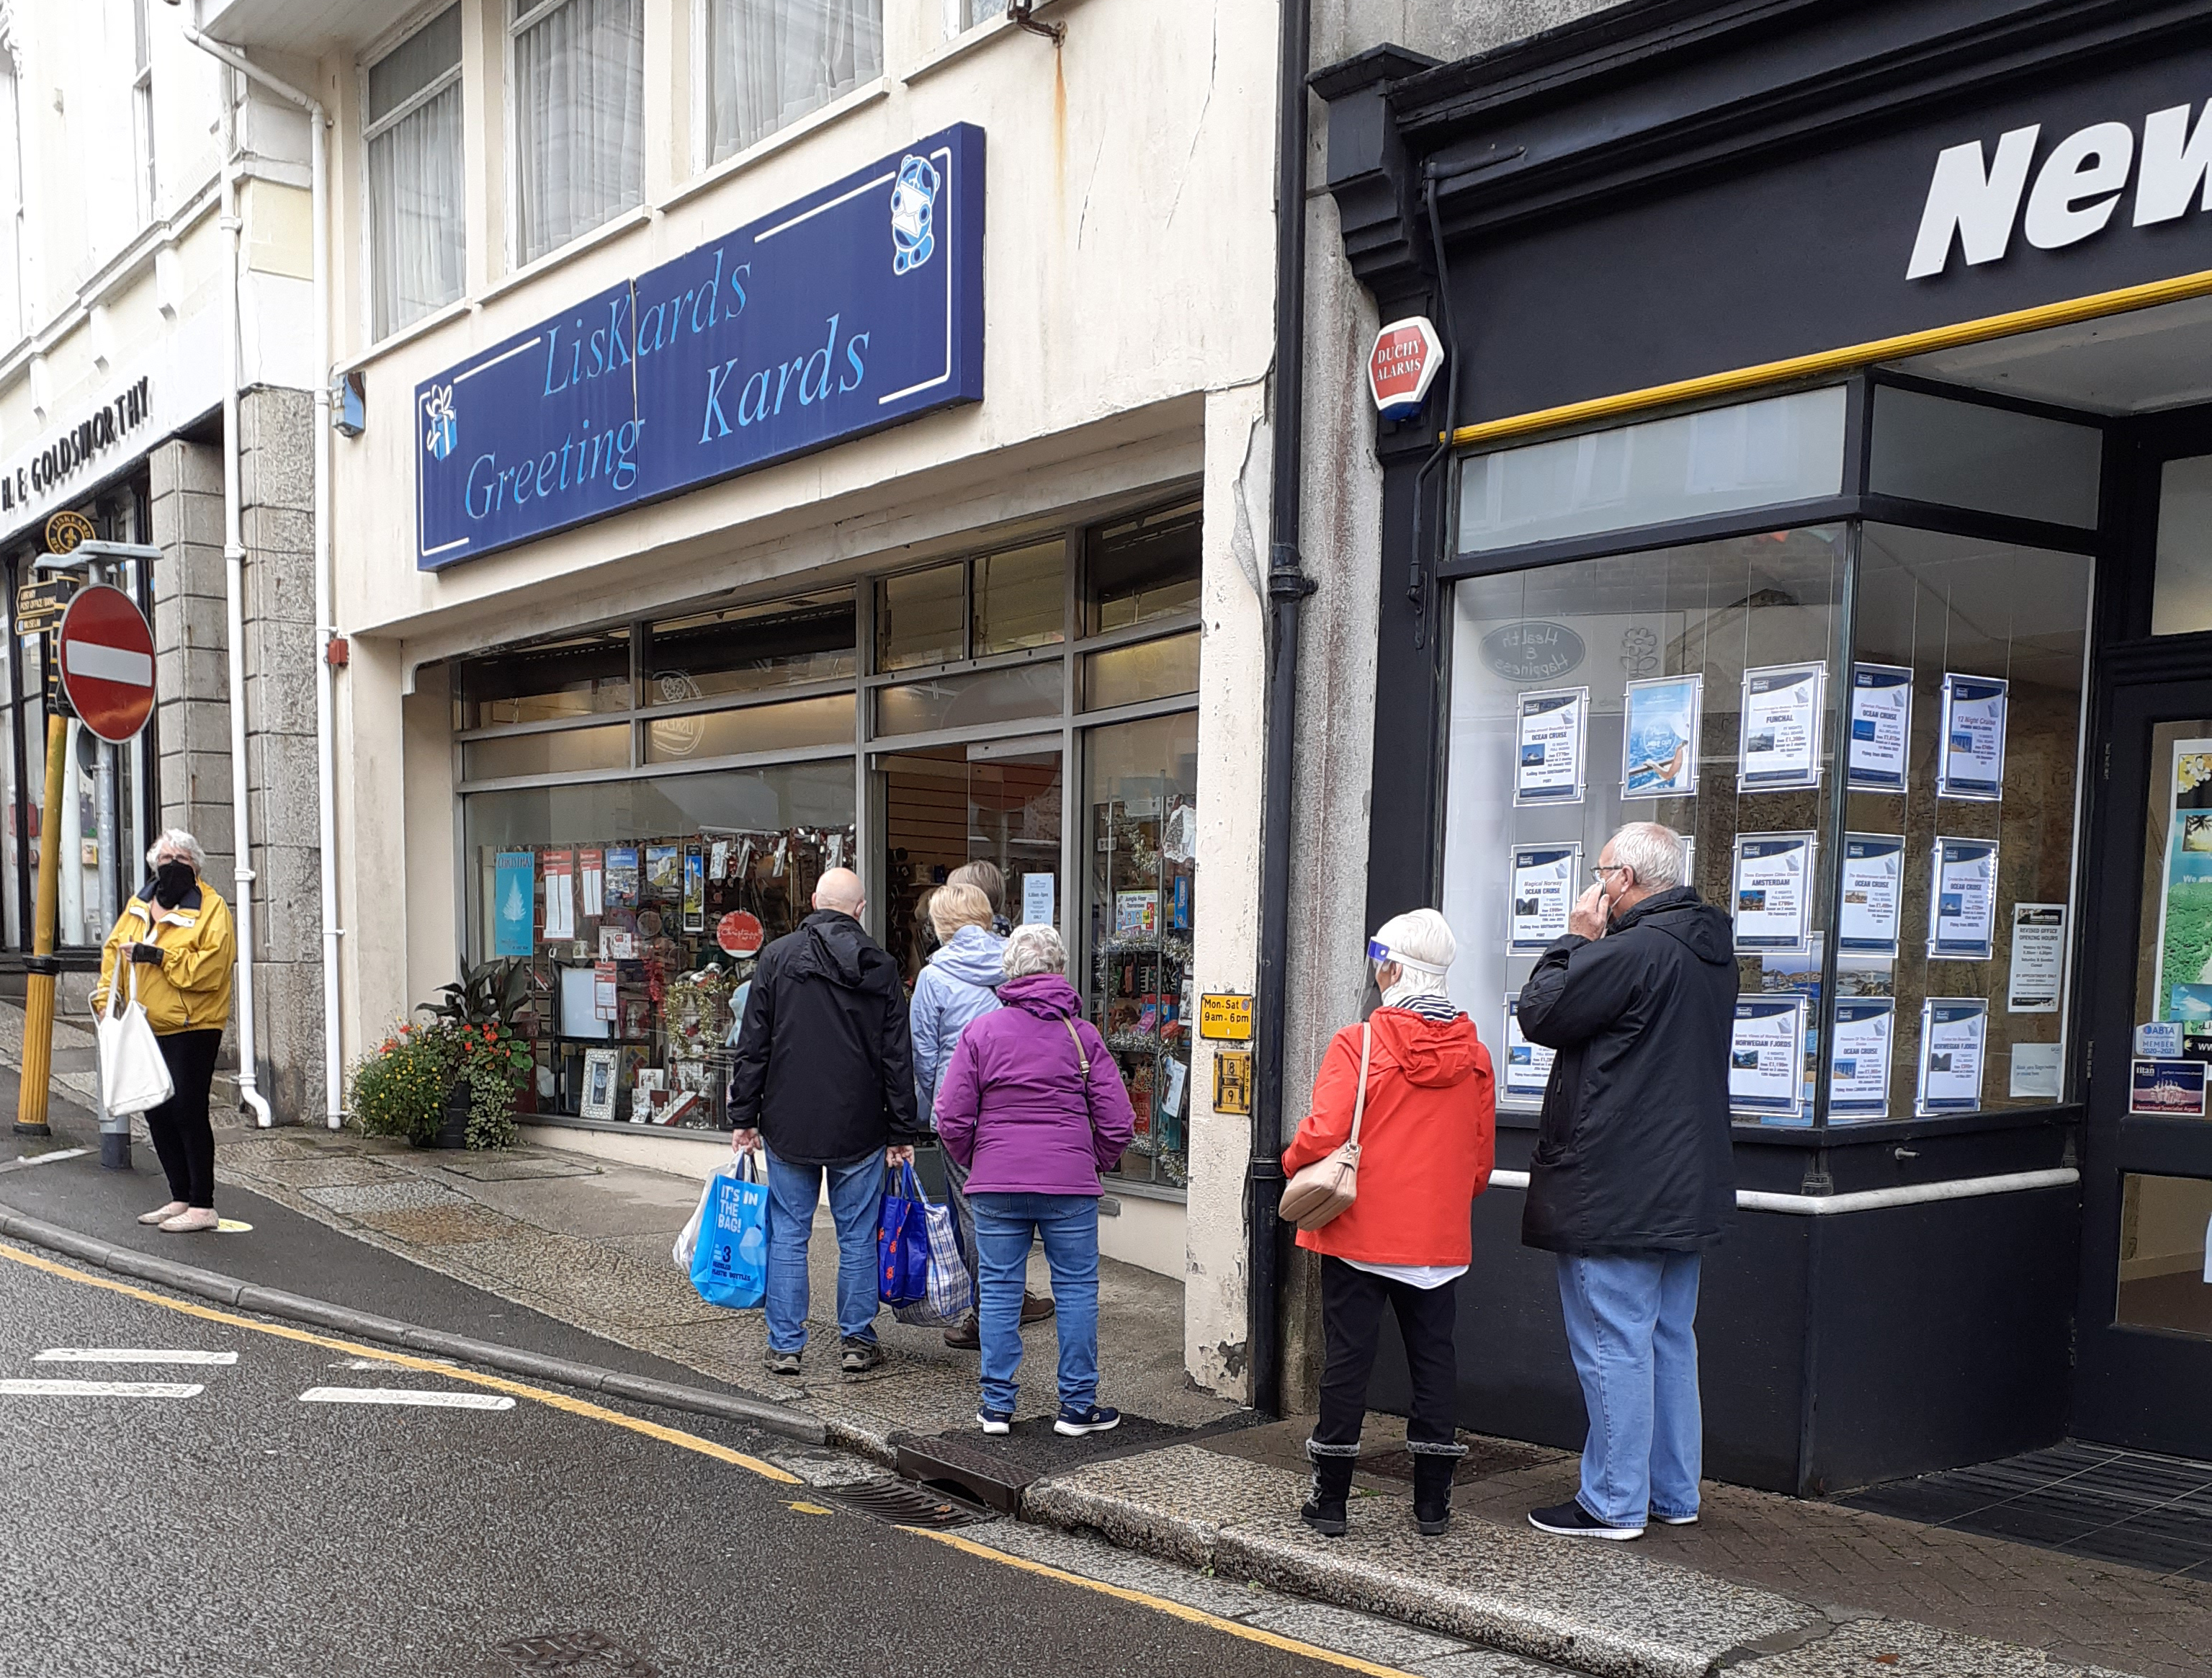 Above: Indie retailers Pam and Bob Malin of Occasions and LisKards (two card shops in Liskeard, Cornwall) sent an image of customers queuing outside one of their shops to their MP and local media to show the demand for greeting cards.